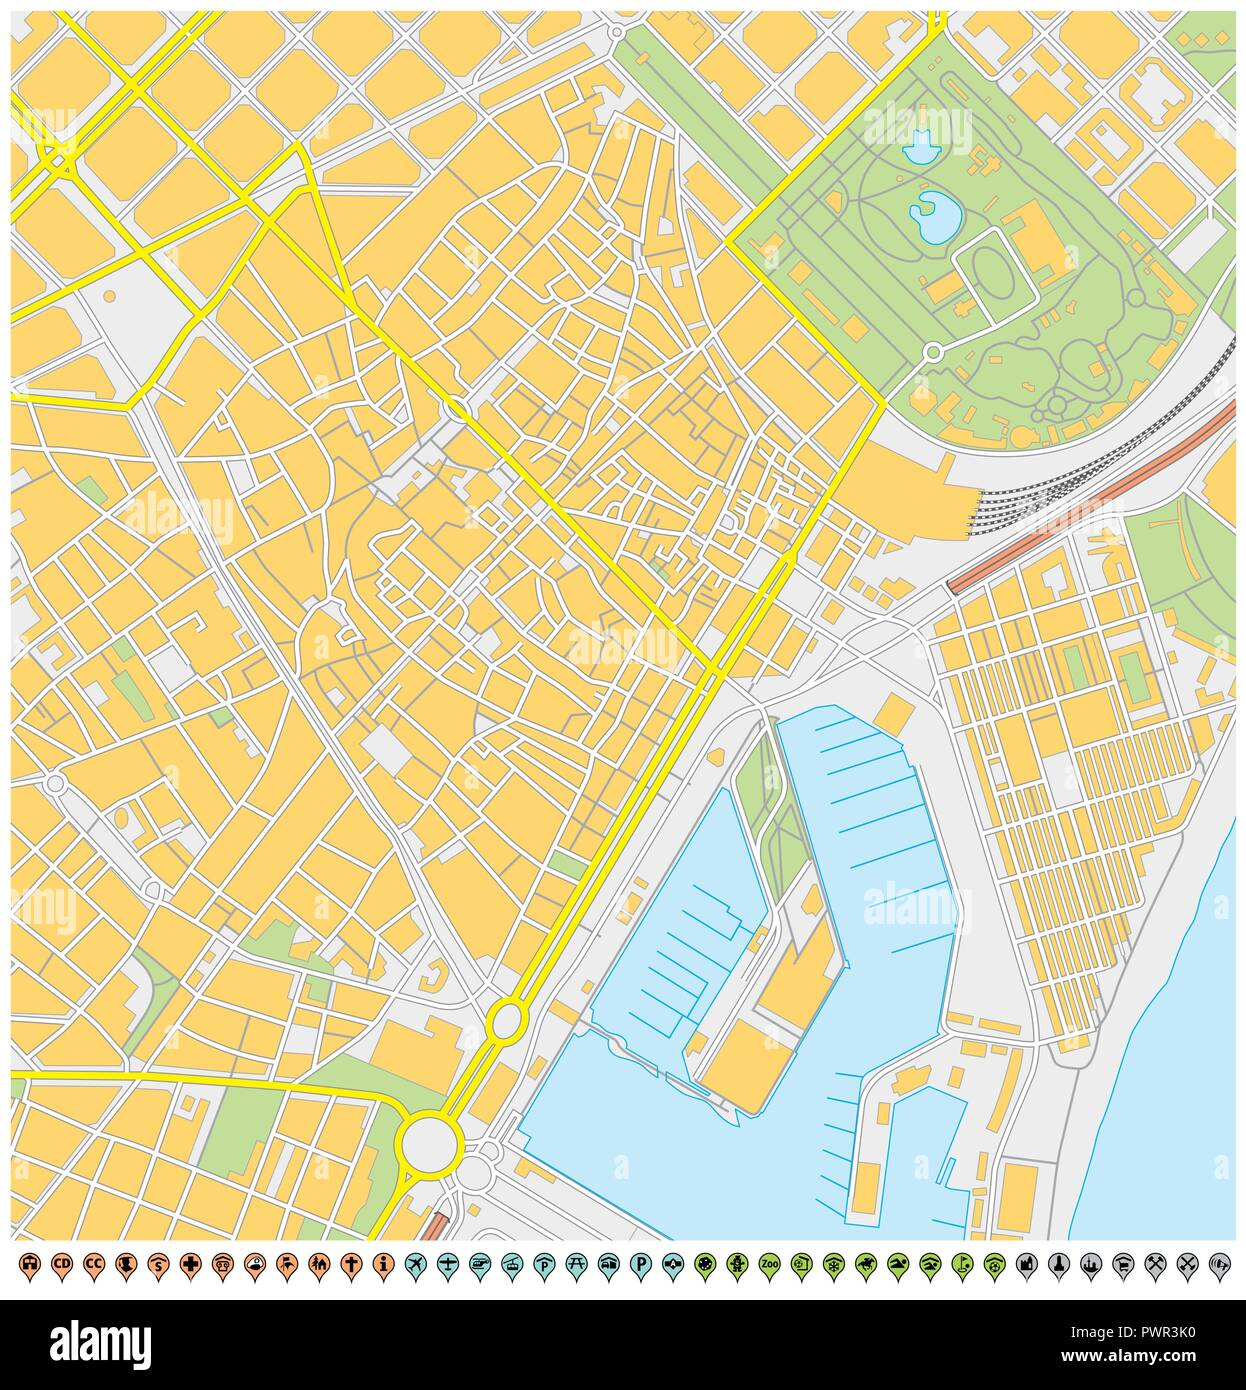 barcelona city map with pin pointers and infrastructure icons. - Stock Vector